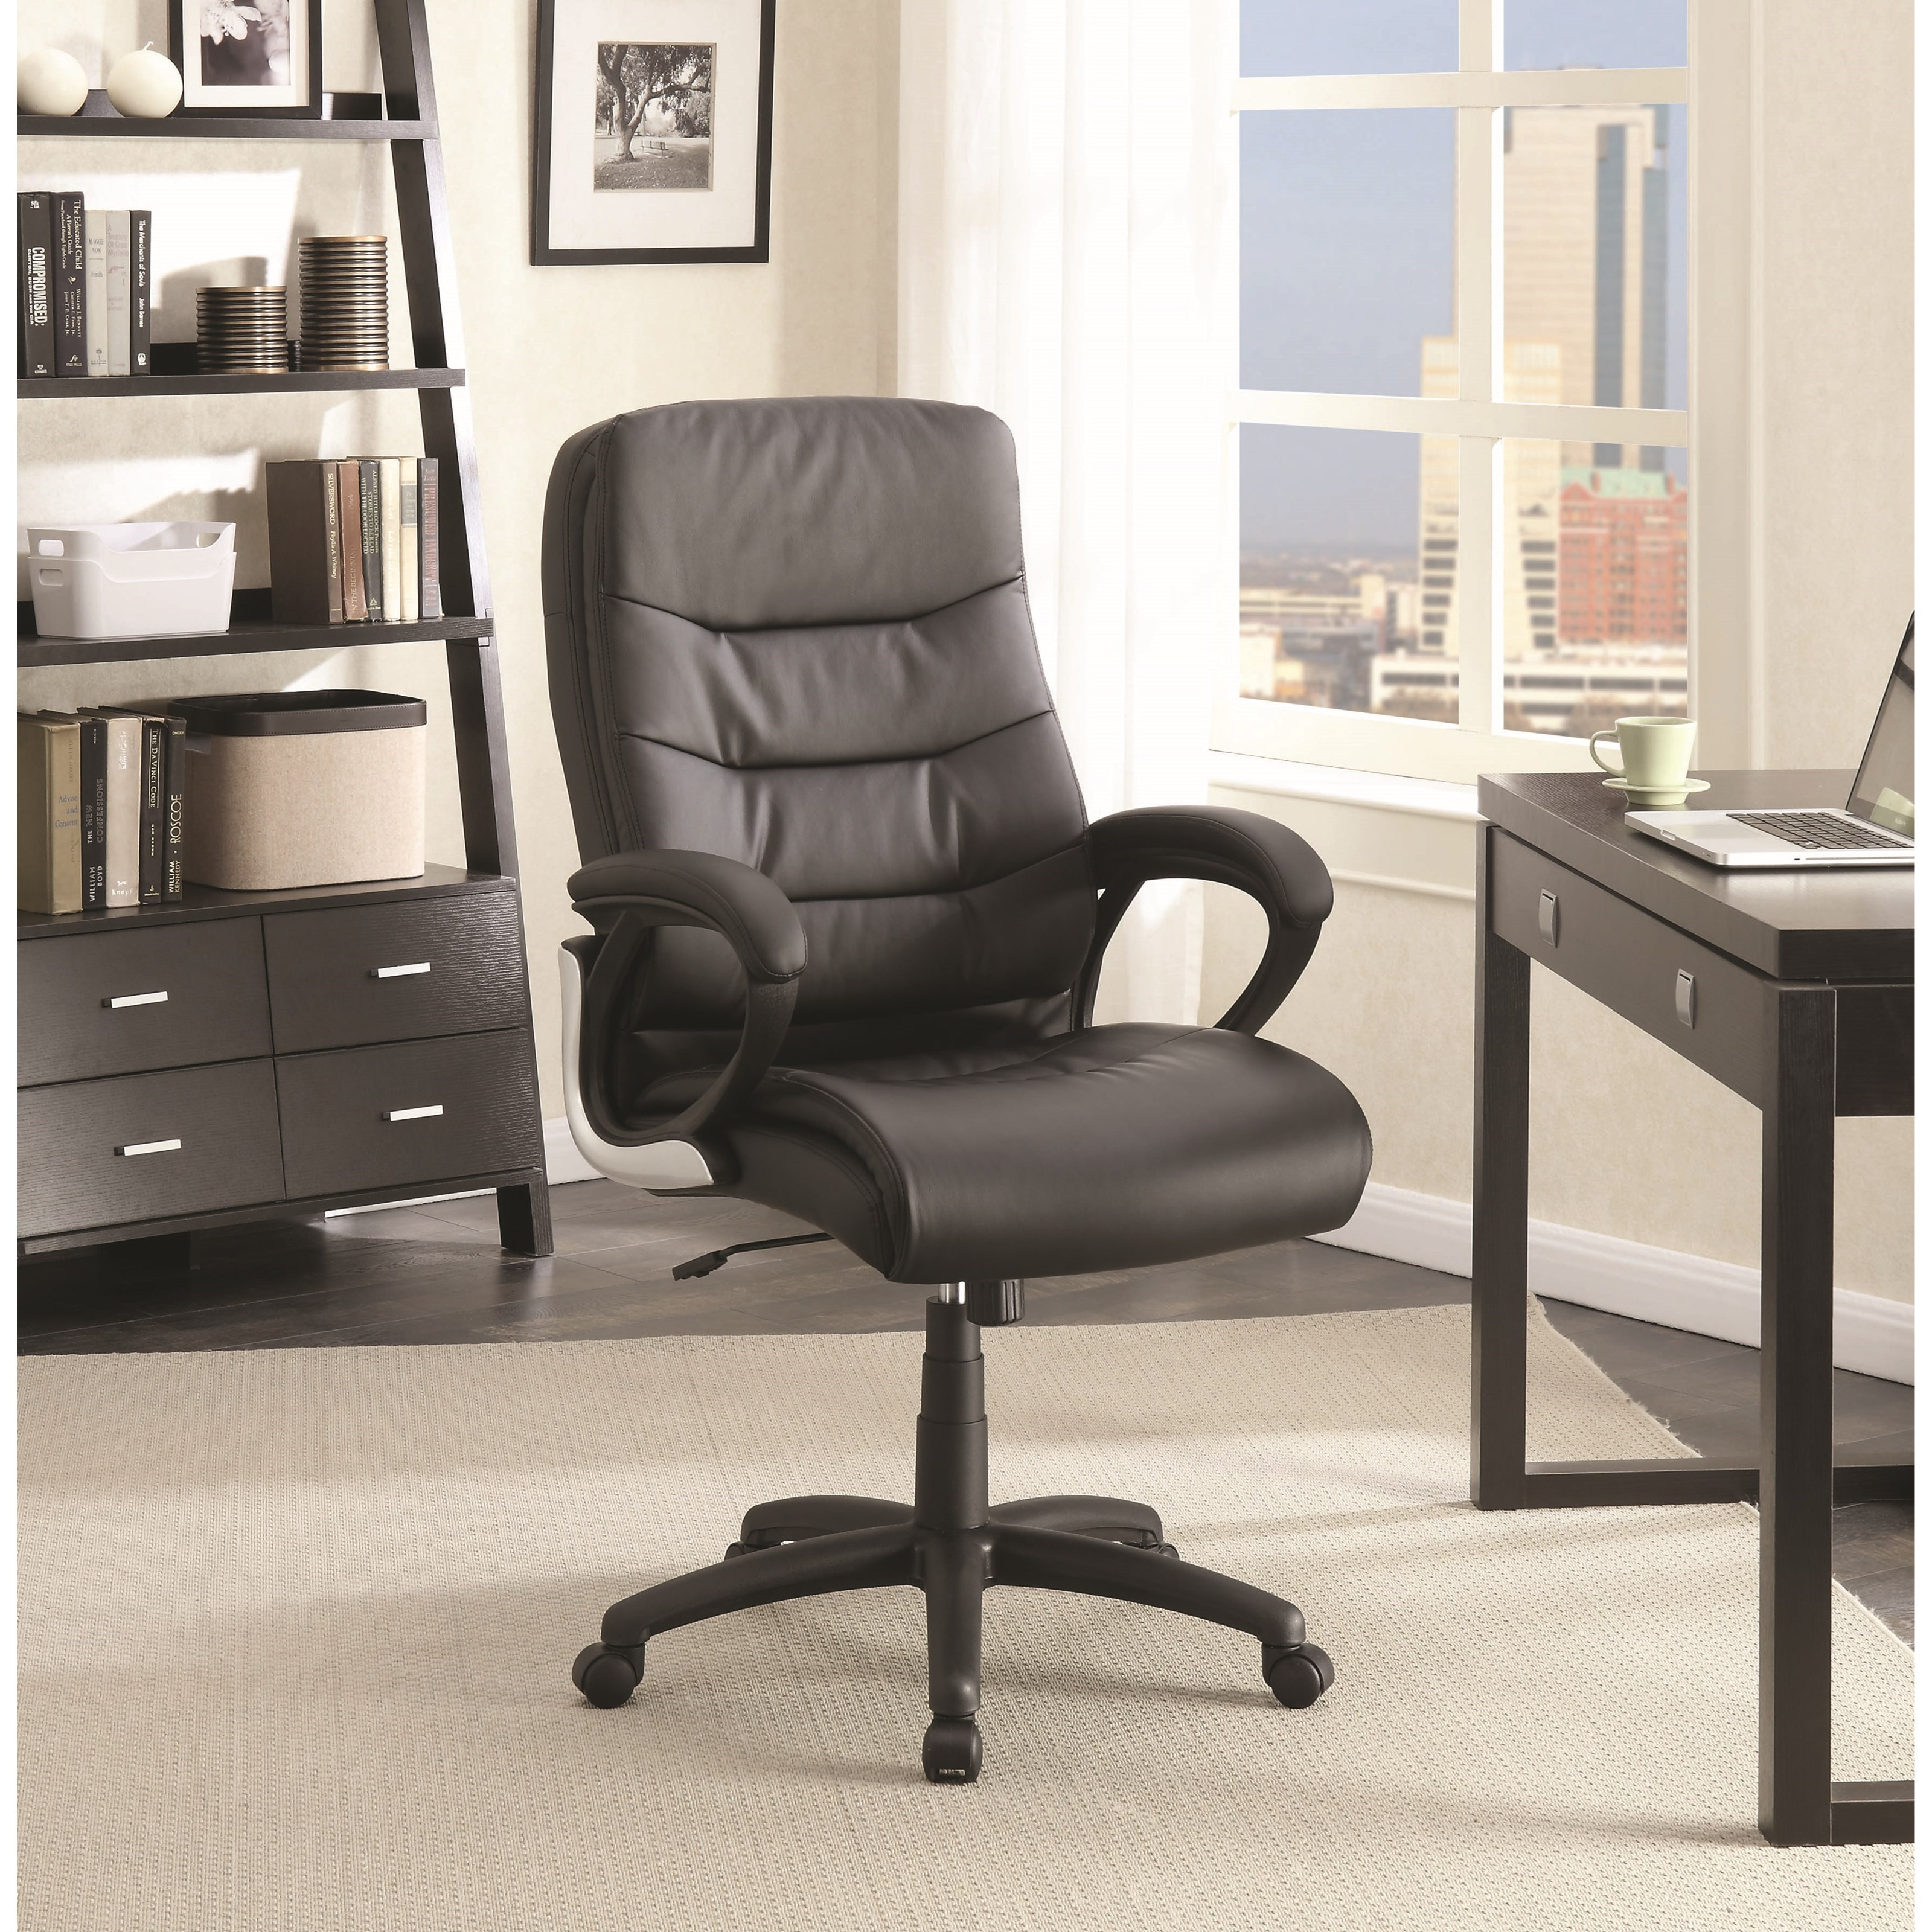 Coaster Office Chairs 801456 Plush Upholstered Office